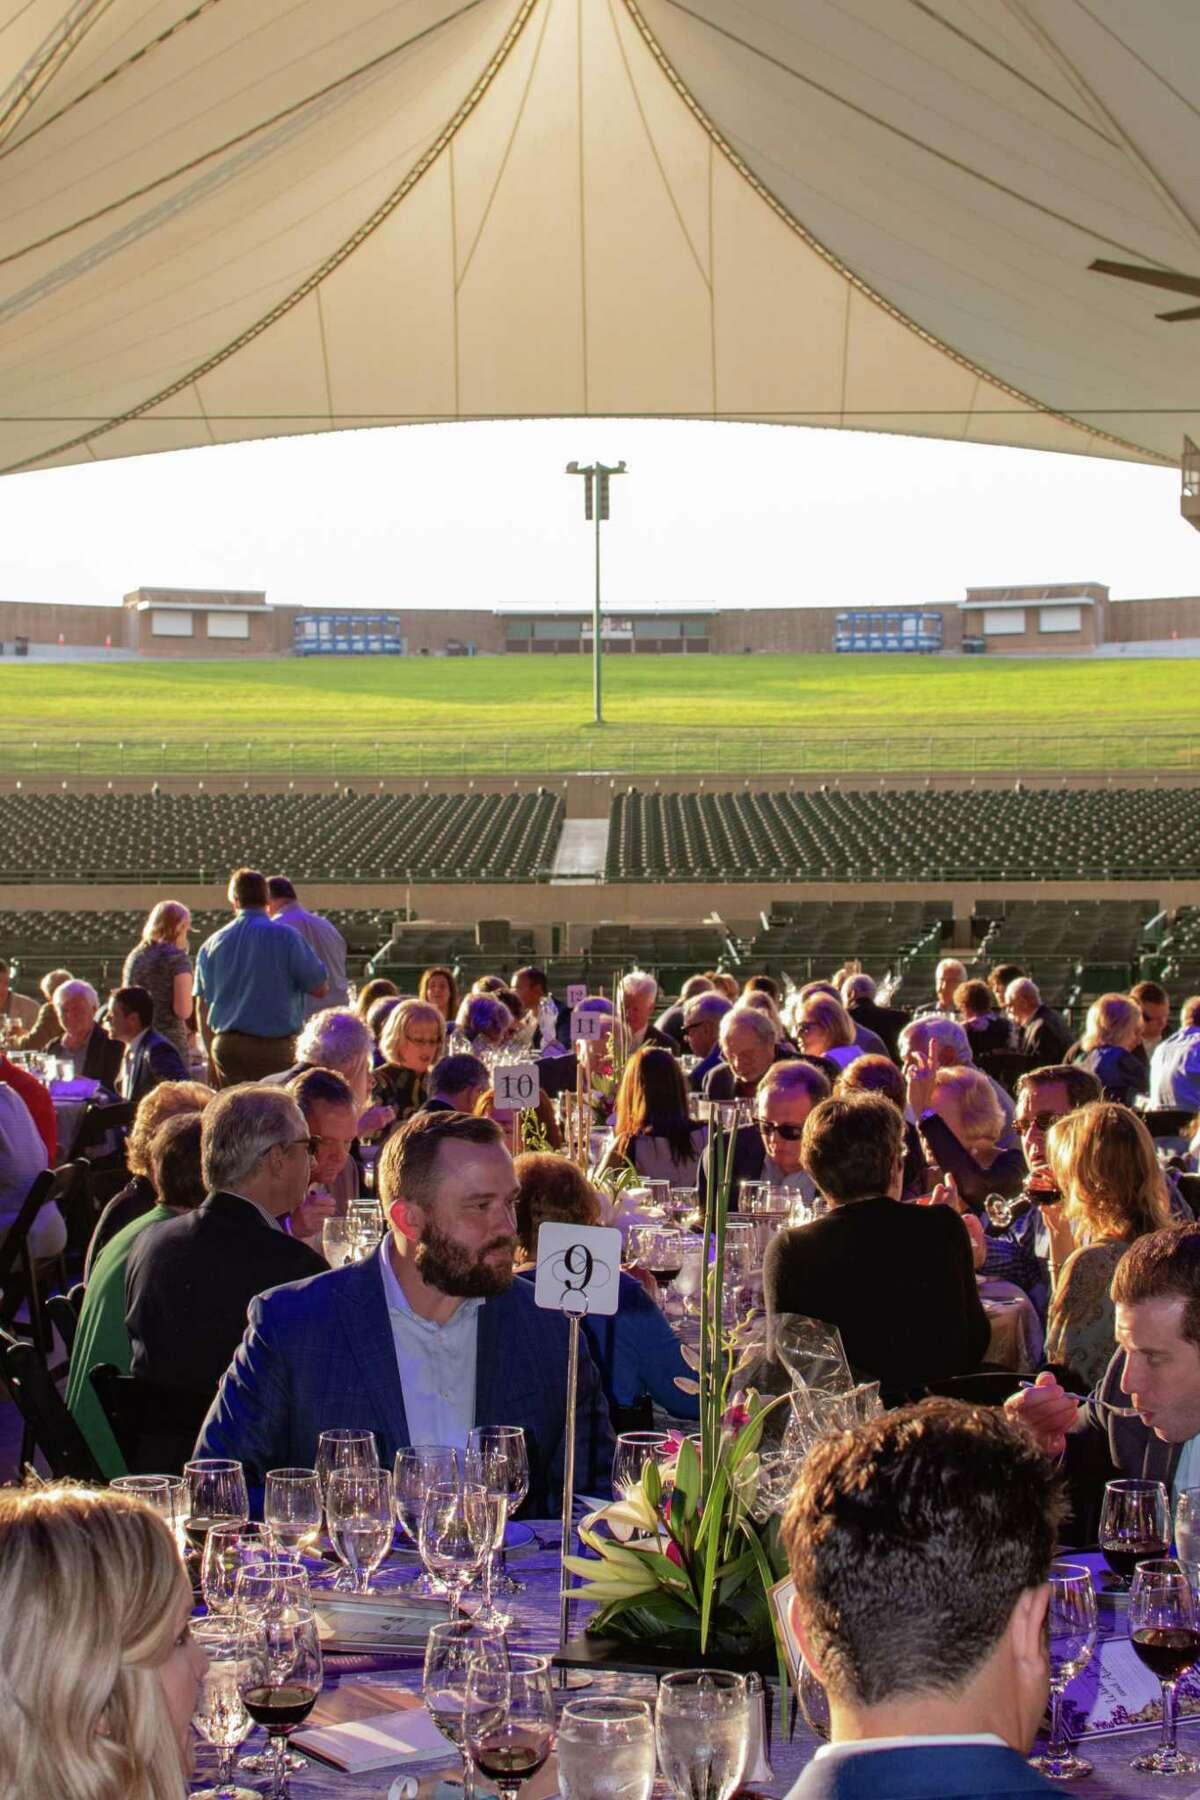 The Pavilion Partners, the official volunteer organization of The Cynthia Woods Mitchell Pavilion will hold its previously rescheduled 21st Annual Wine Dinner and Auction Sunday, May 16 at 5 p.m. at The Pavilion. This exclusive dinner funds scholarships for local students pursuing the fine arts in higher education. This picture is from the 2019 event.